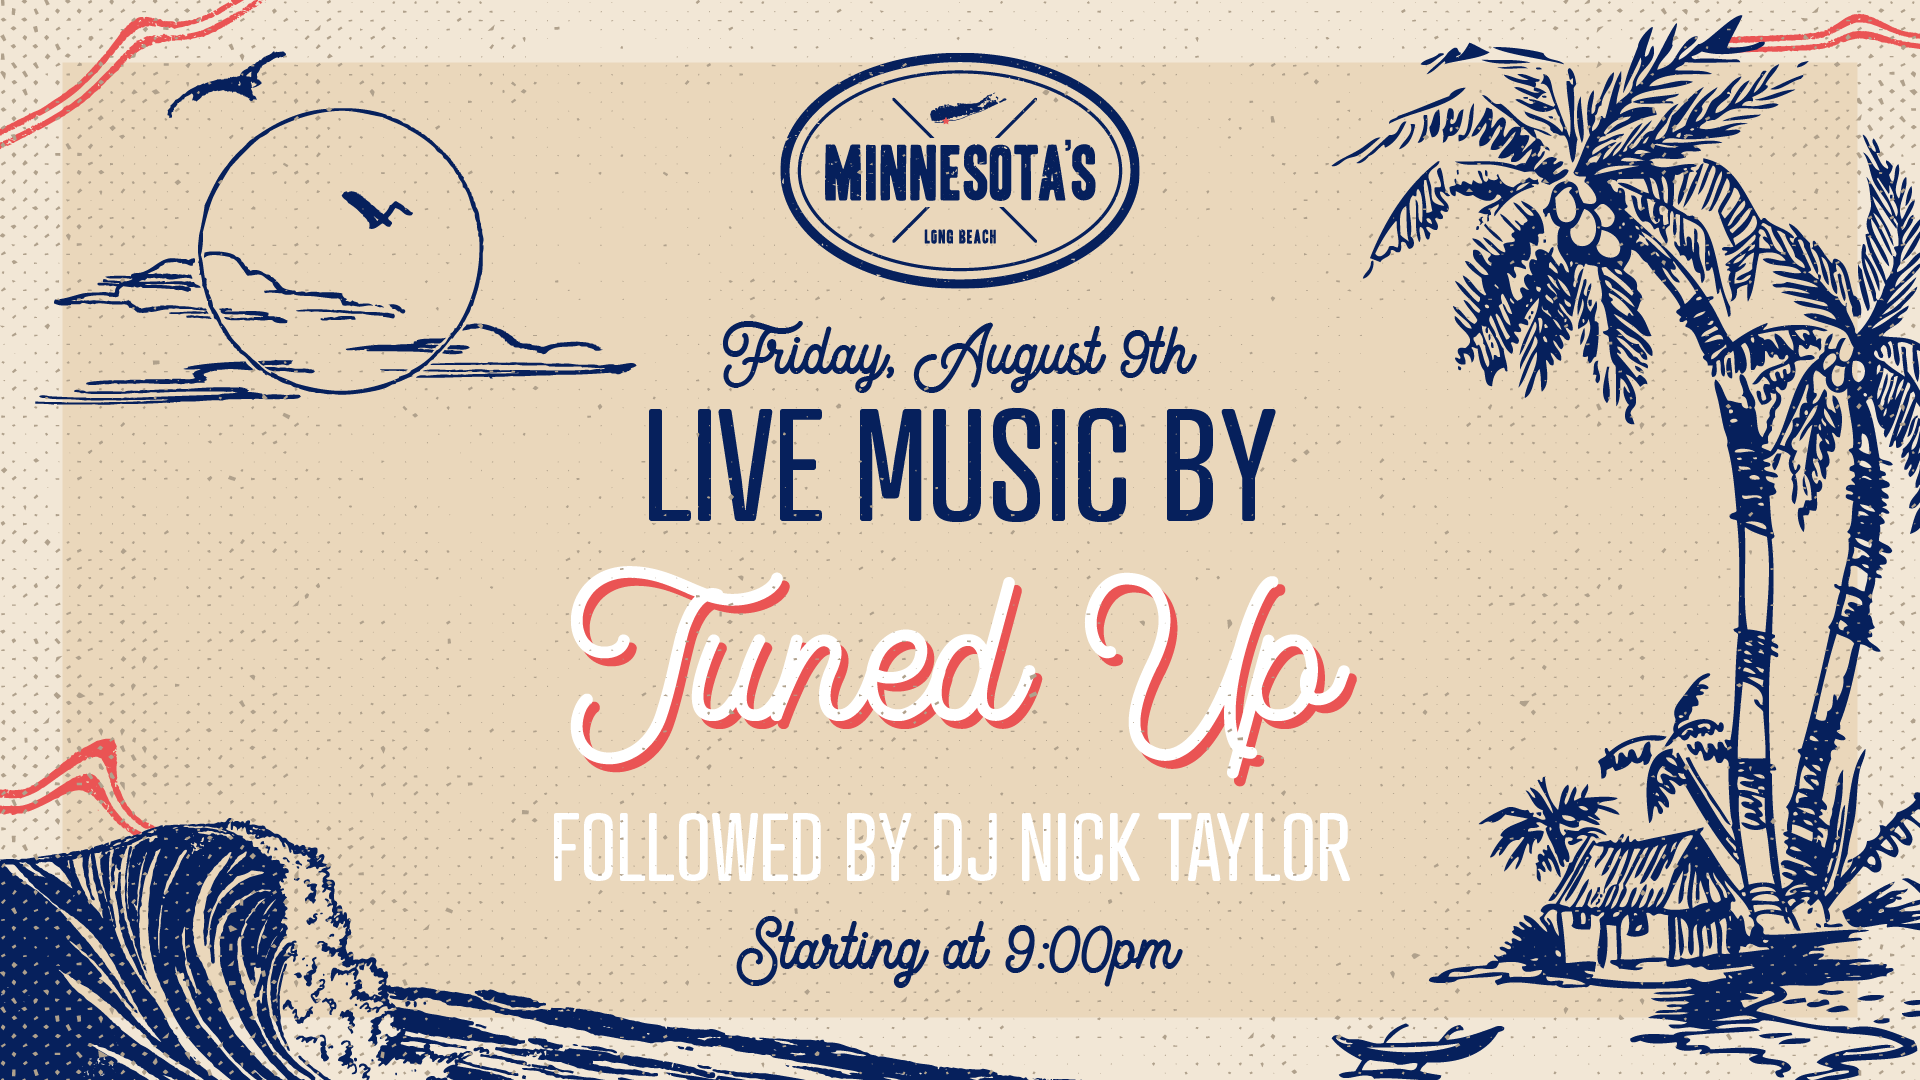 flyer for live music by nichols road and tuned up followed by dj nick taylor at minnesotas on august 9th at 7pm